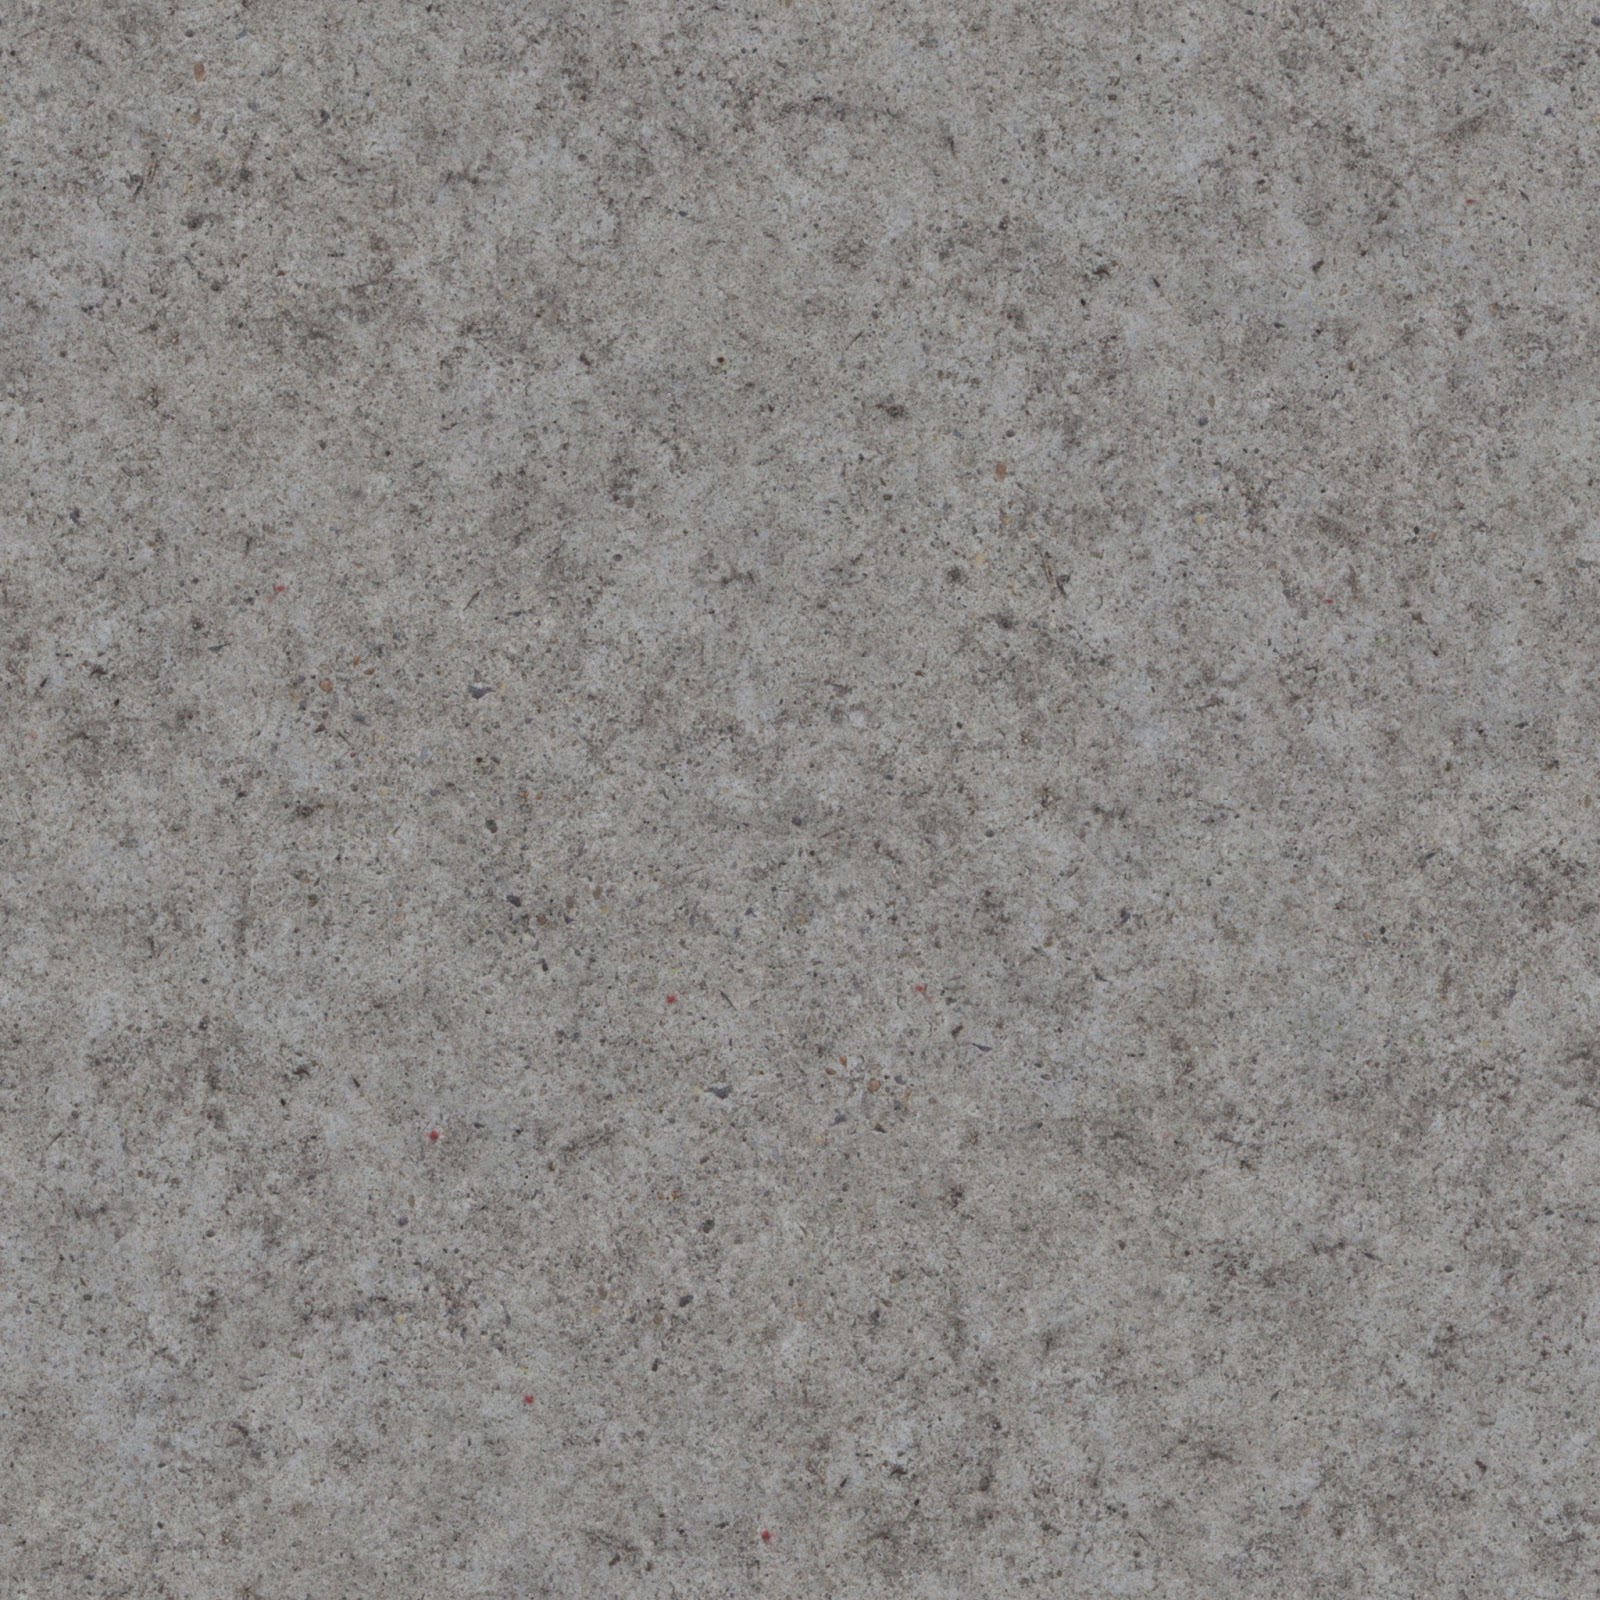 High Resolution Seamless Textures Concrete granite wall flat